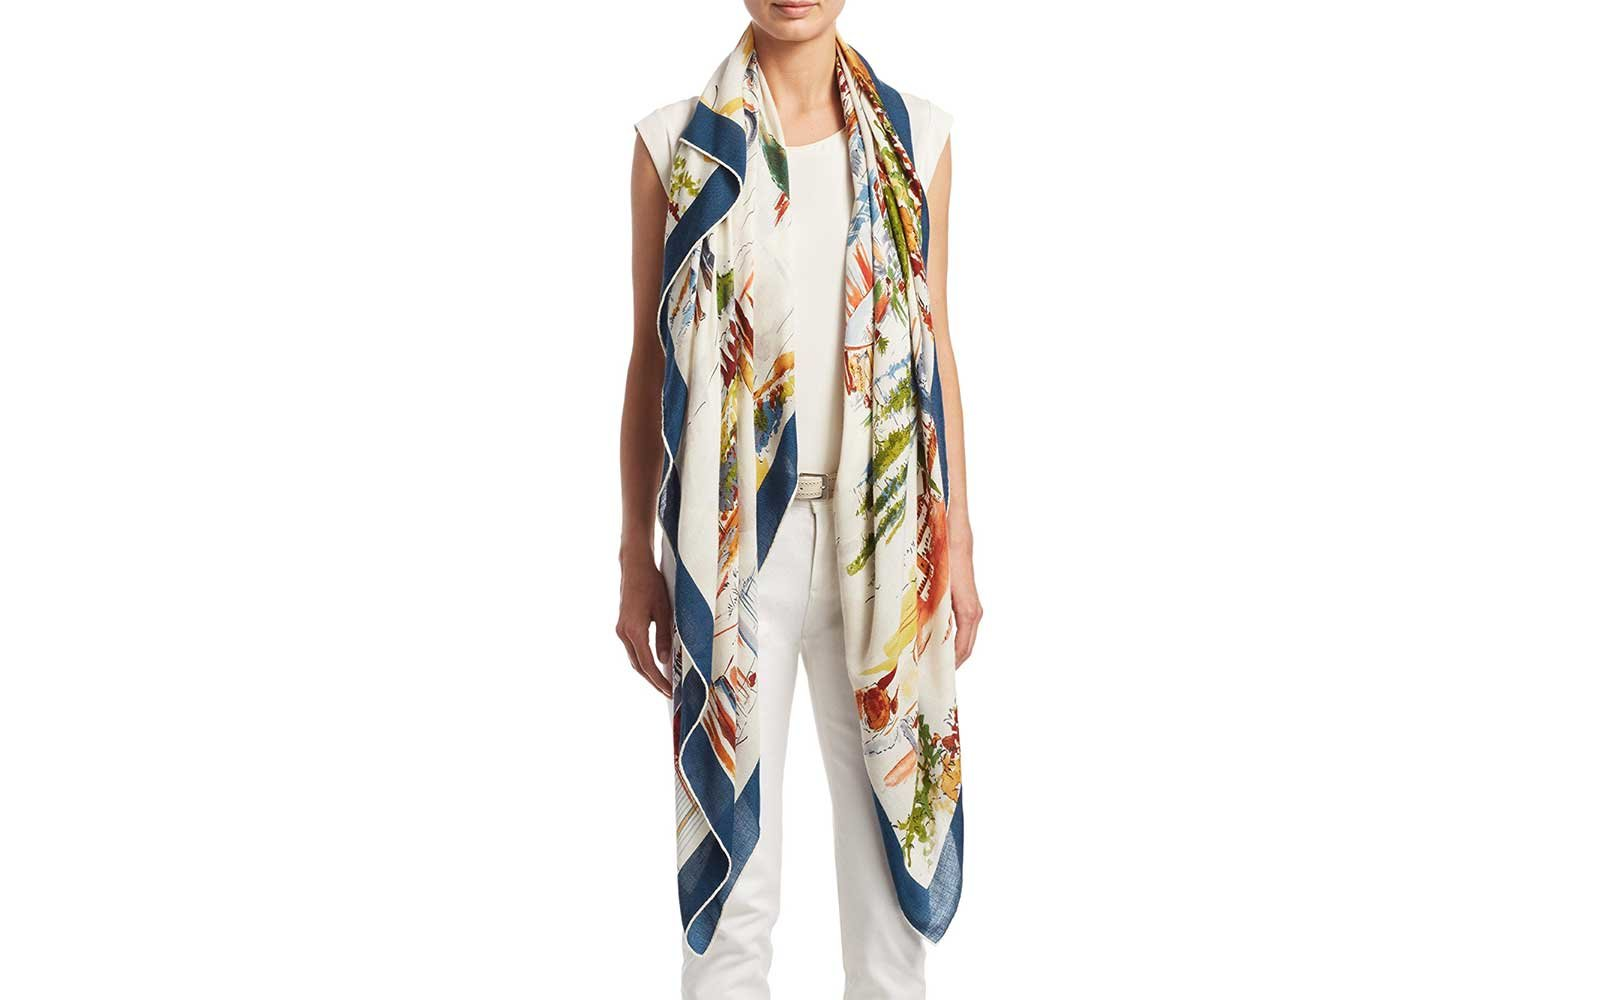 Loro Piana printed travel scarf with scenes of Tuscany